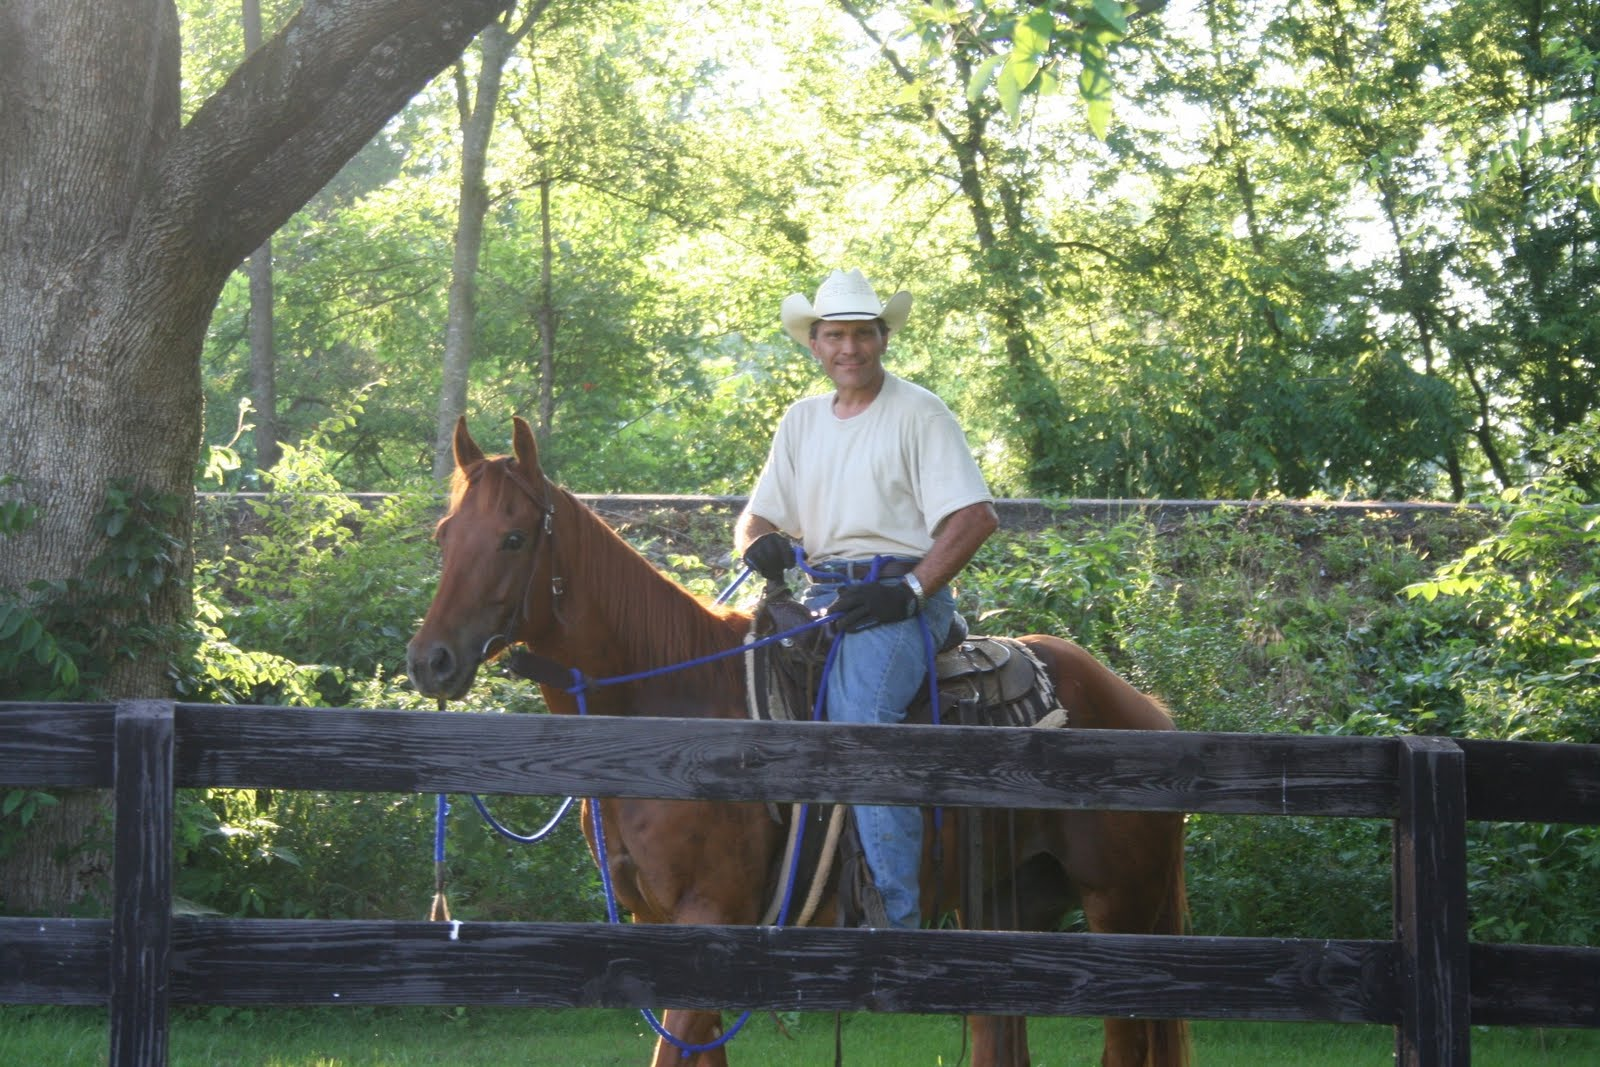 Image of Kevin Spaeth Horse Training Sitting on trained horse near fence under trees on a sunny day.